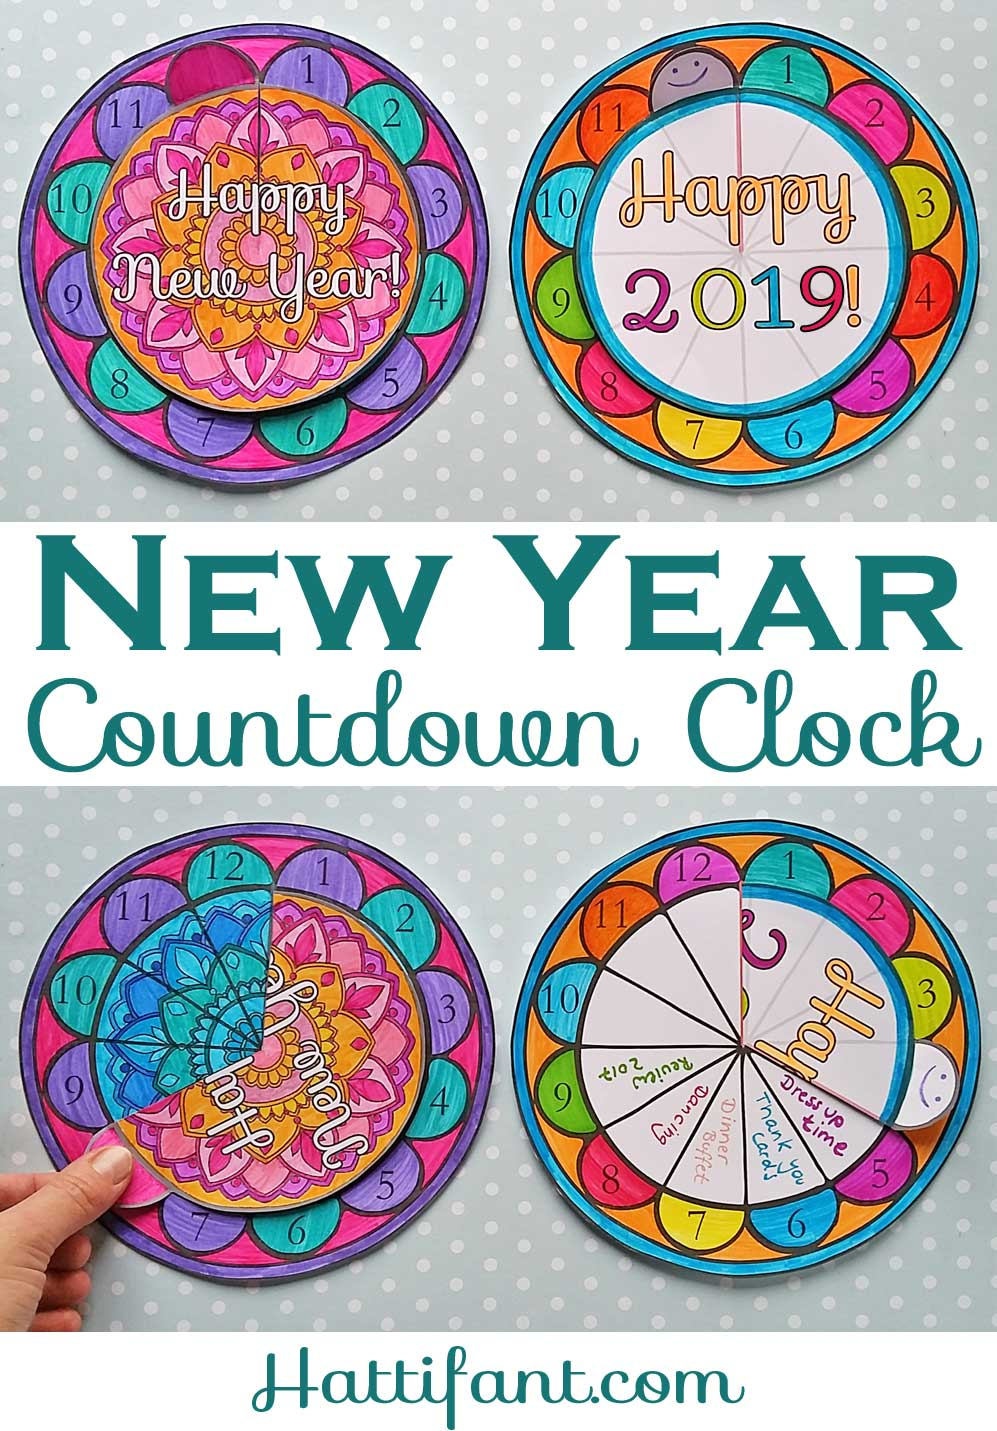 Hattifant's New Year Countdown Clock Paper and Coloring Craft